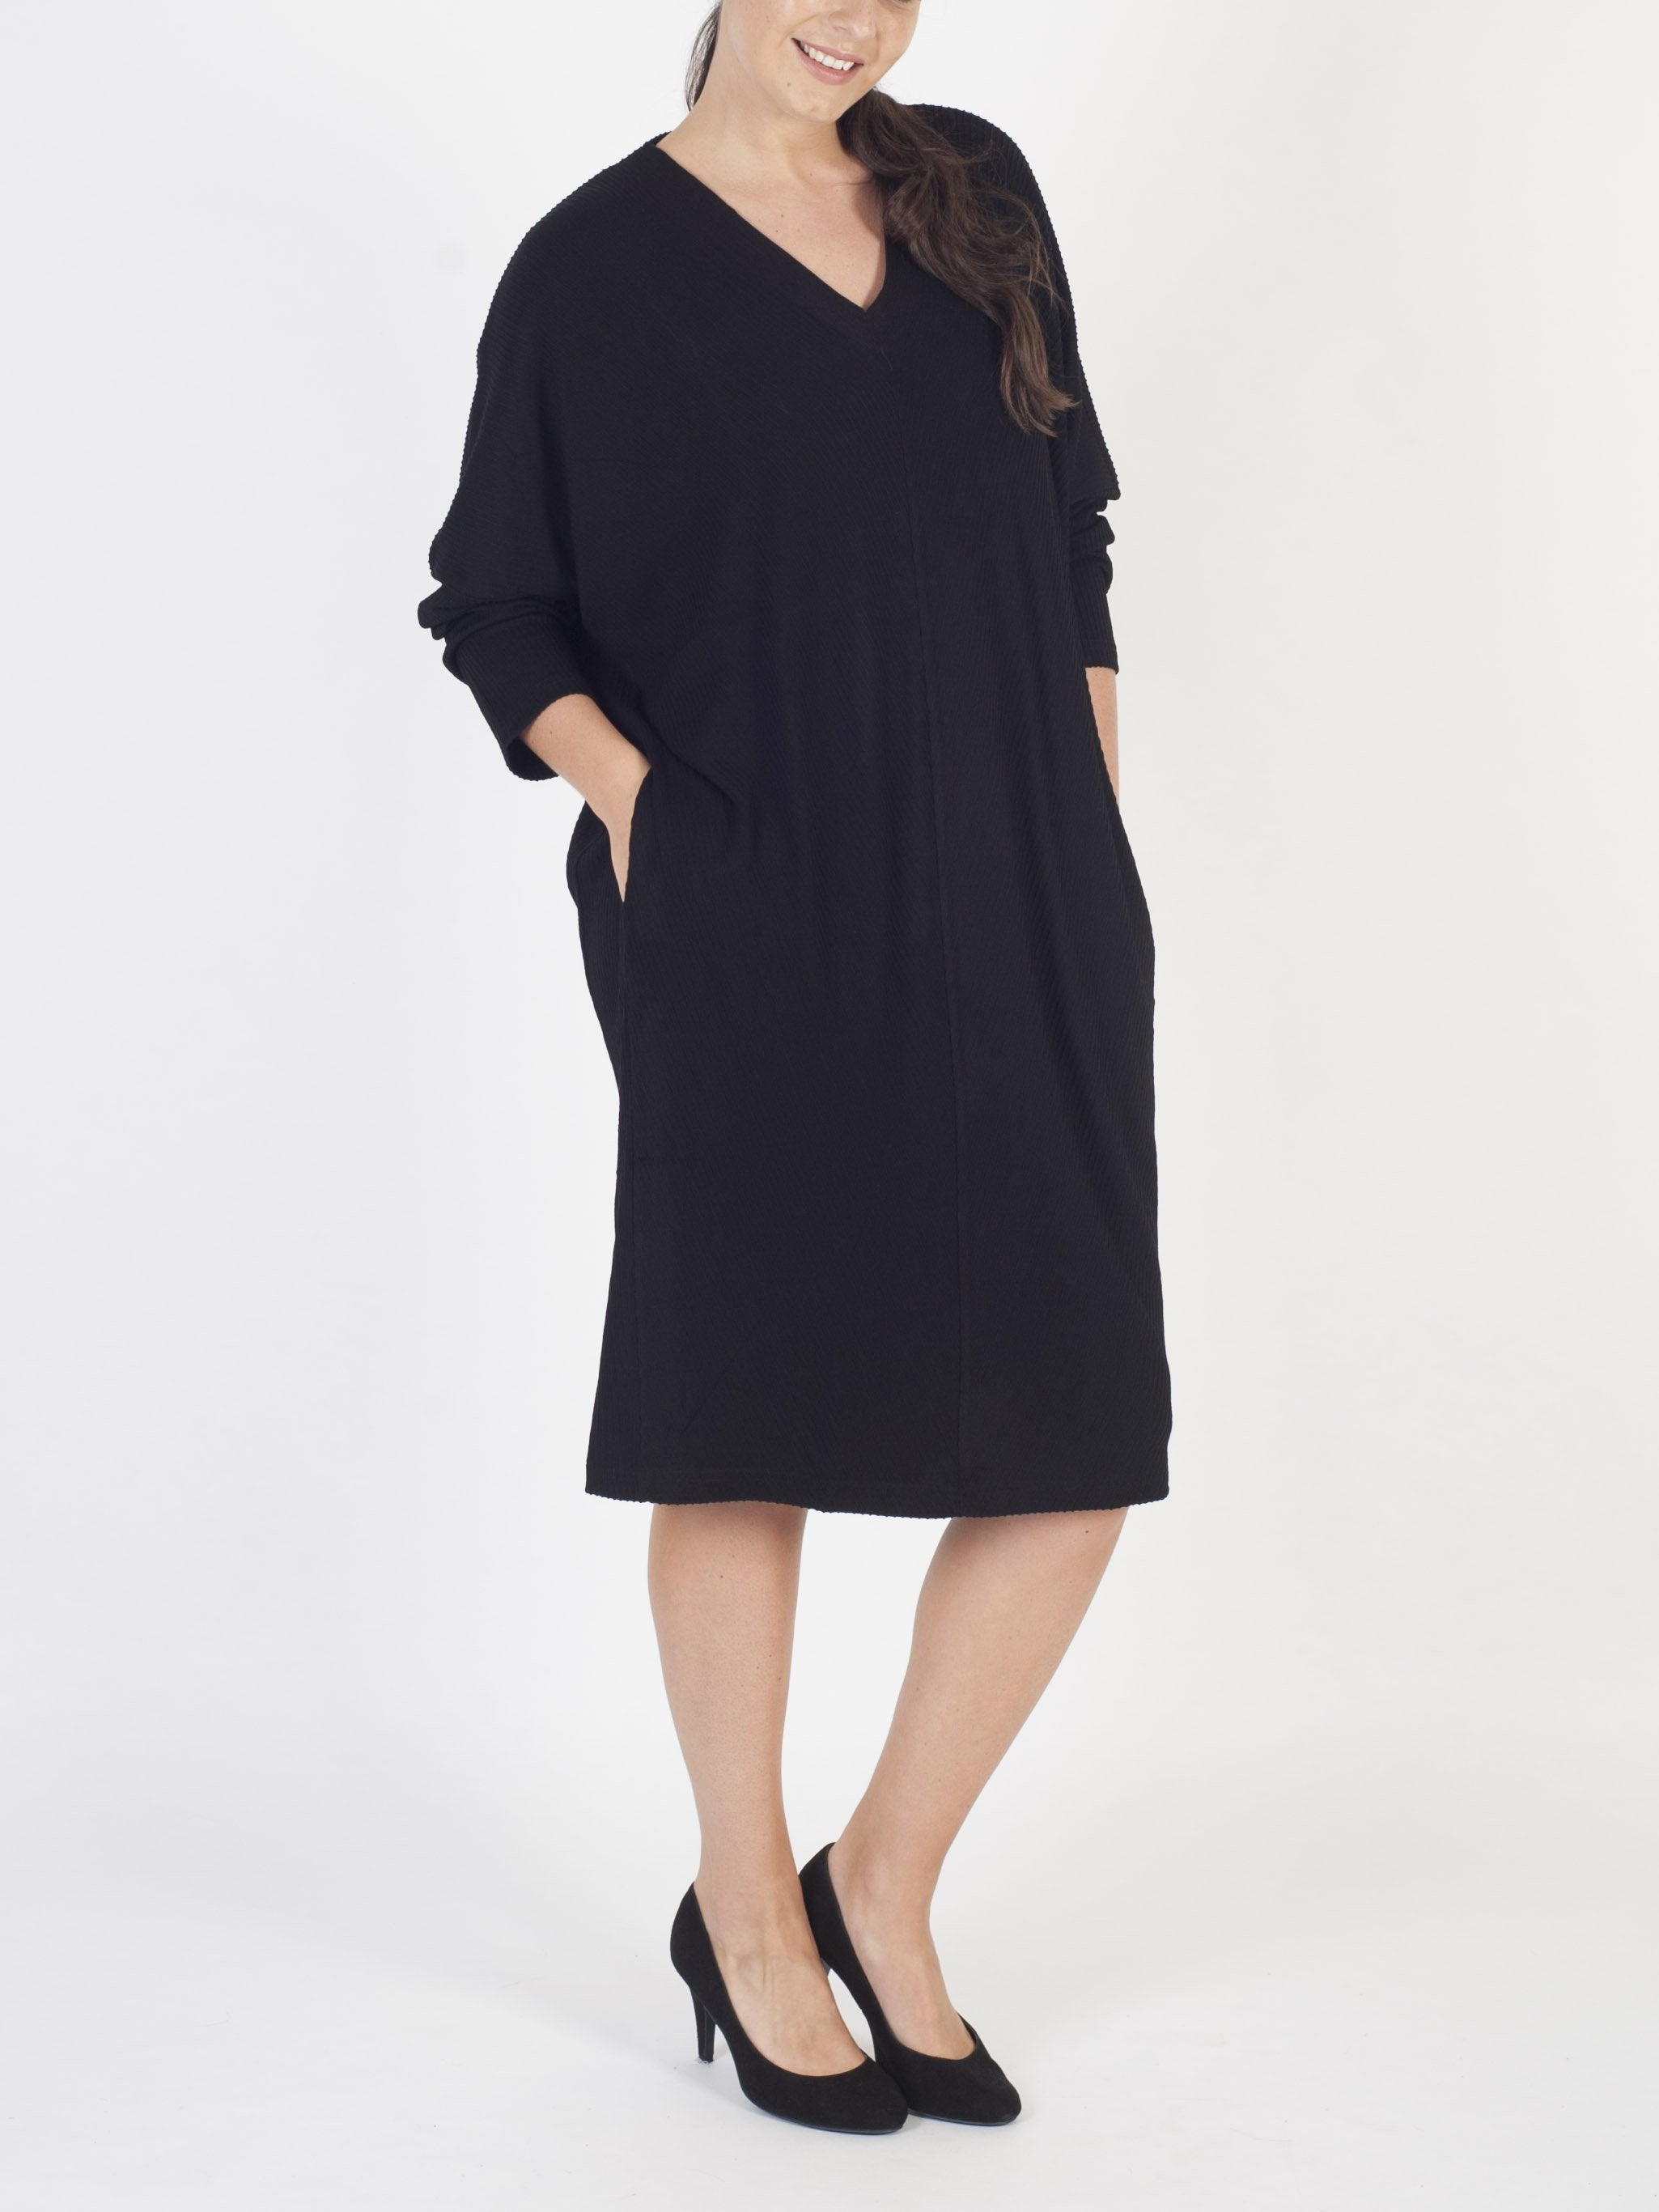 VETONO Black Jersey Cocoon Dress